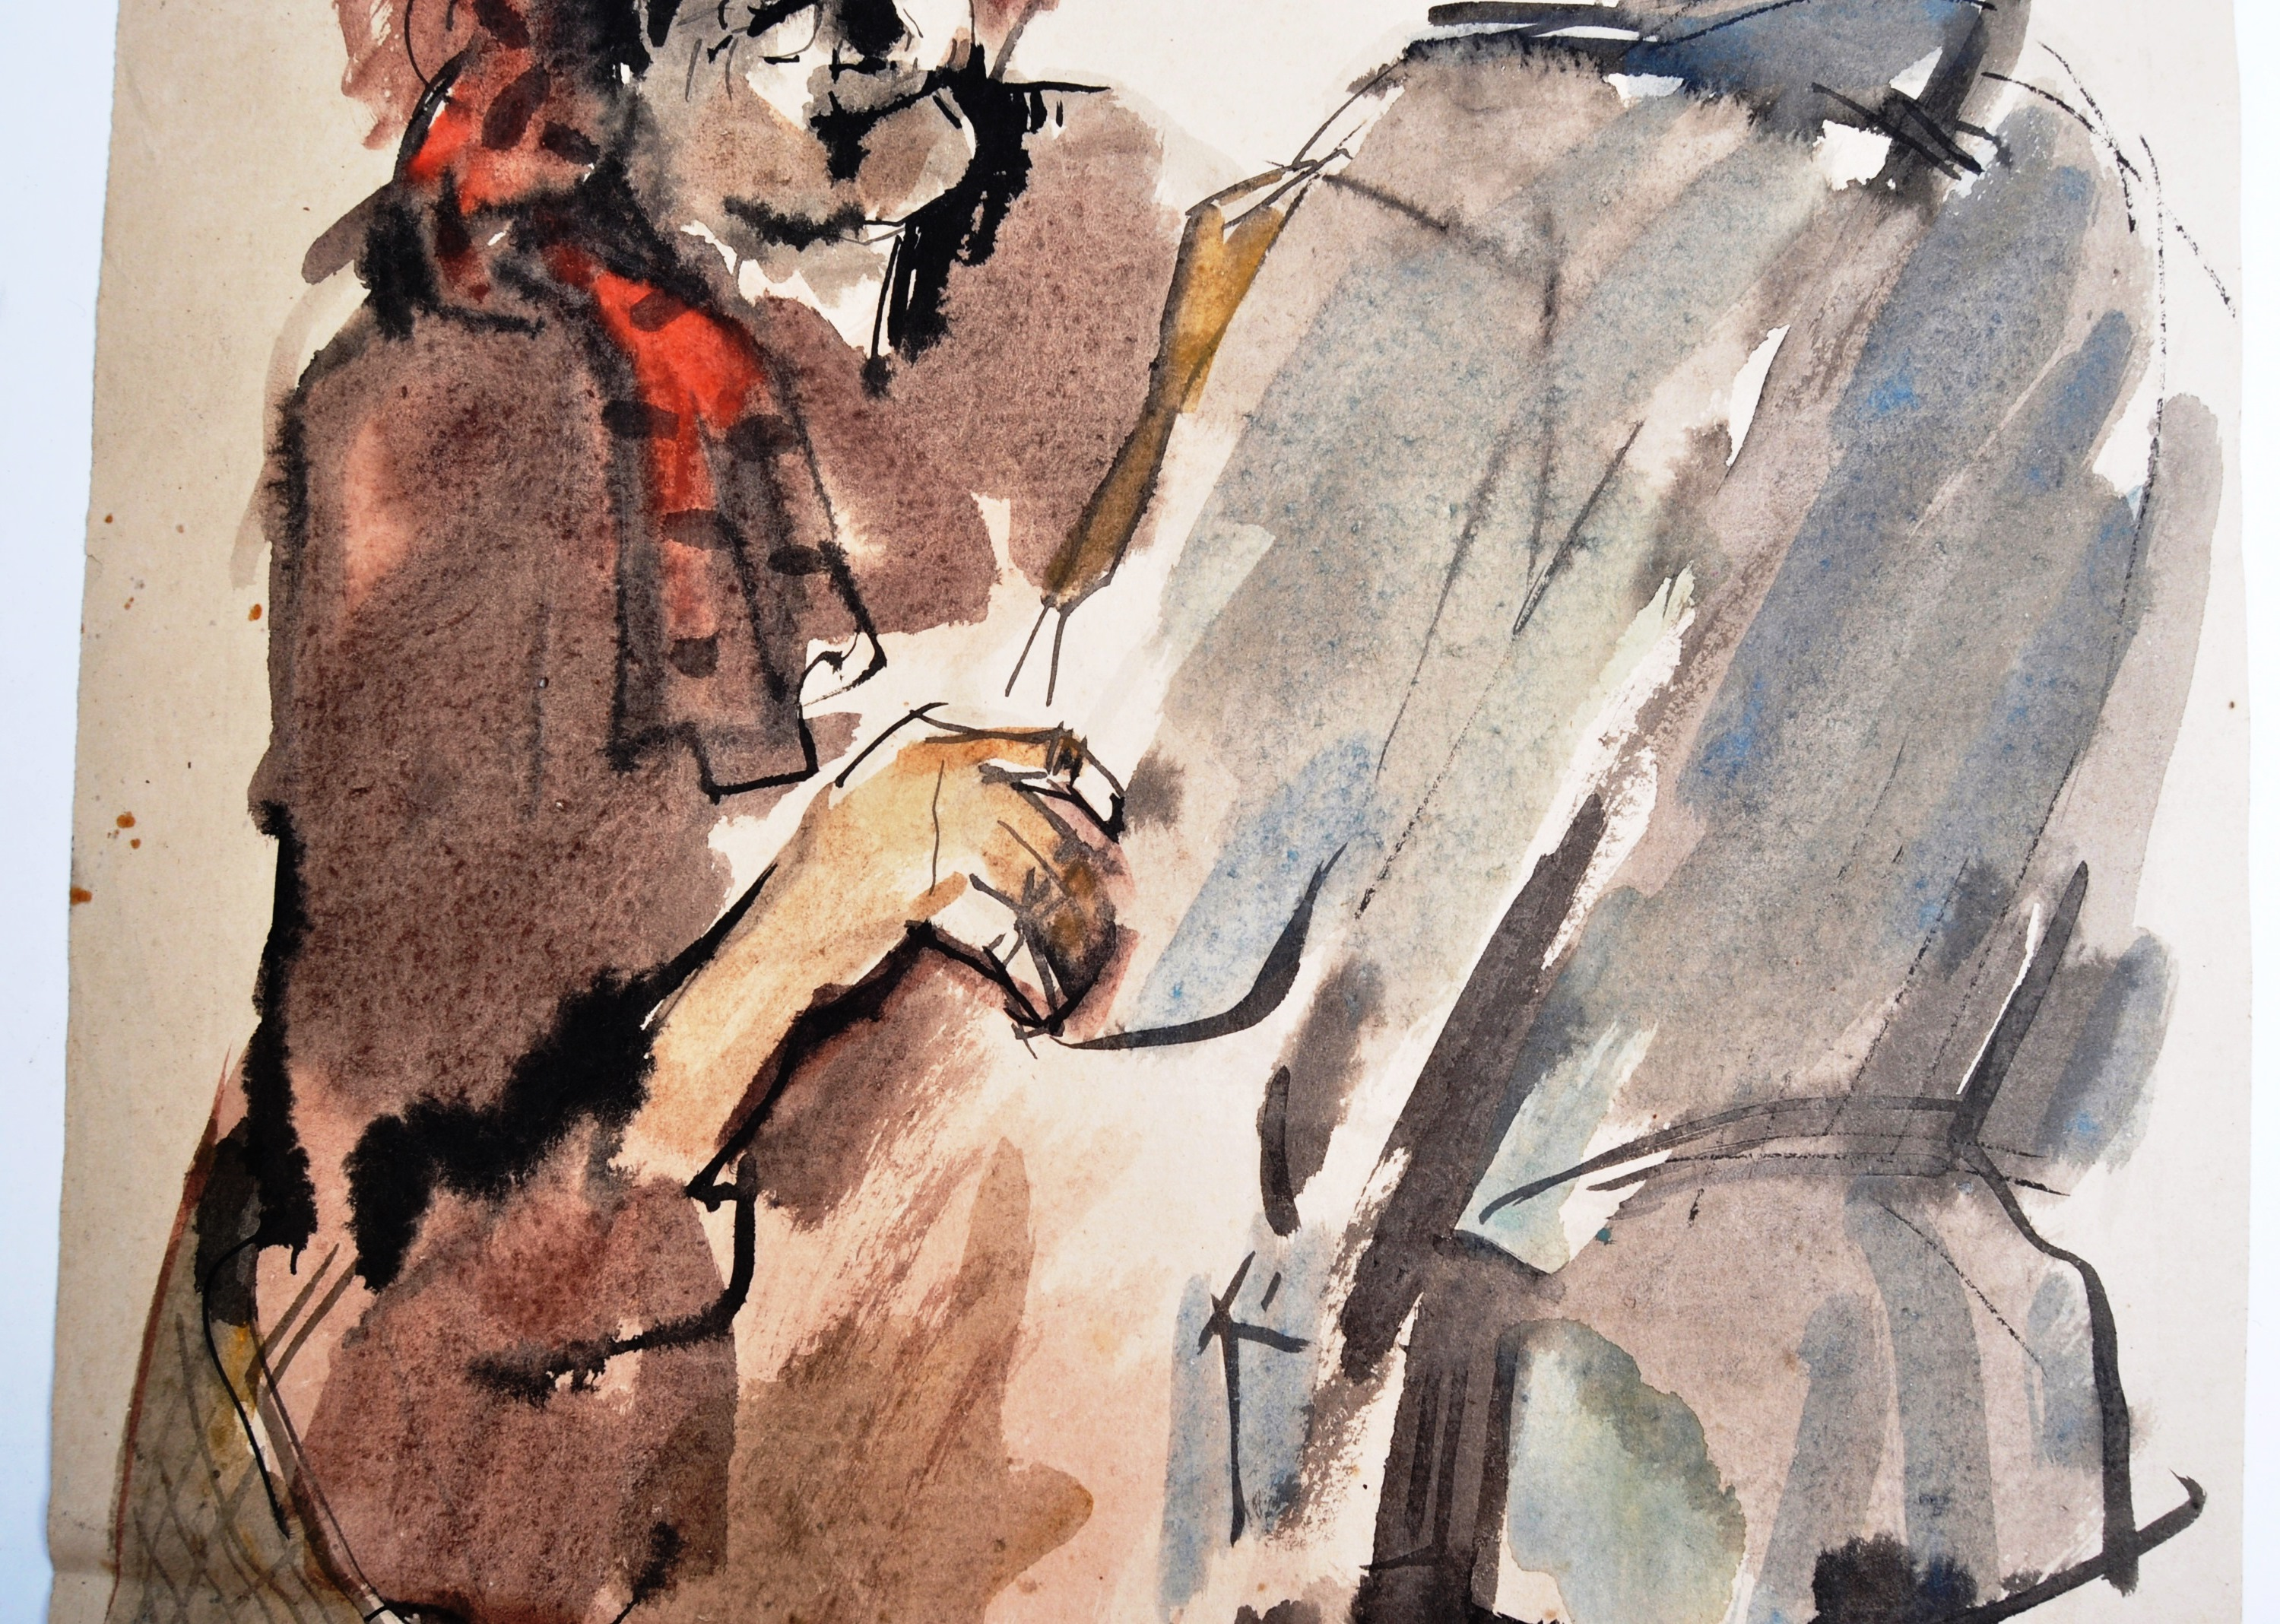 WWII SECOND WORLD WAR WATERCOLOUR PAINTING OF NAZI 1943 - Image 4 of 6